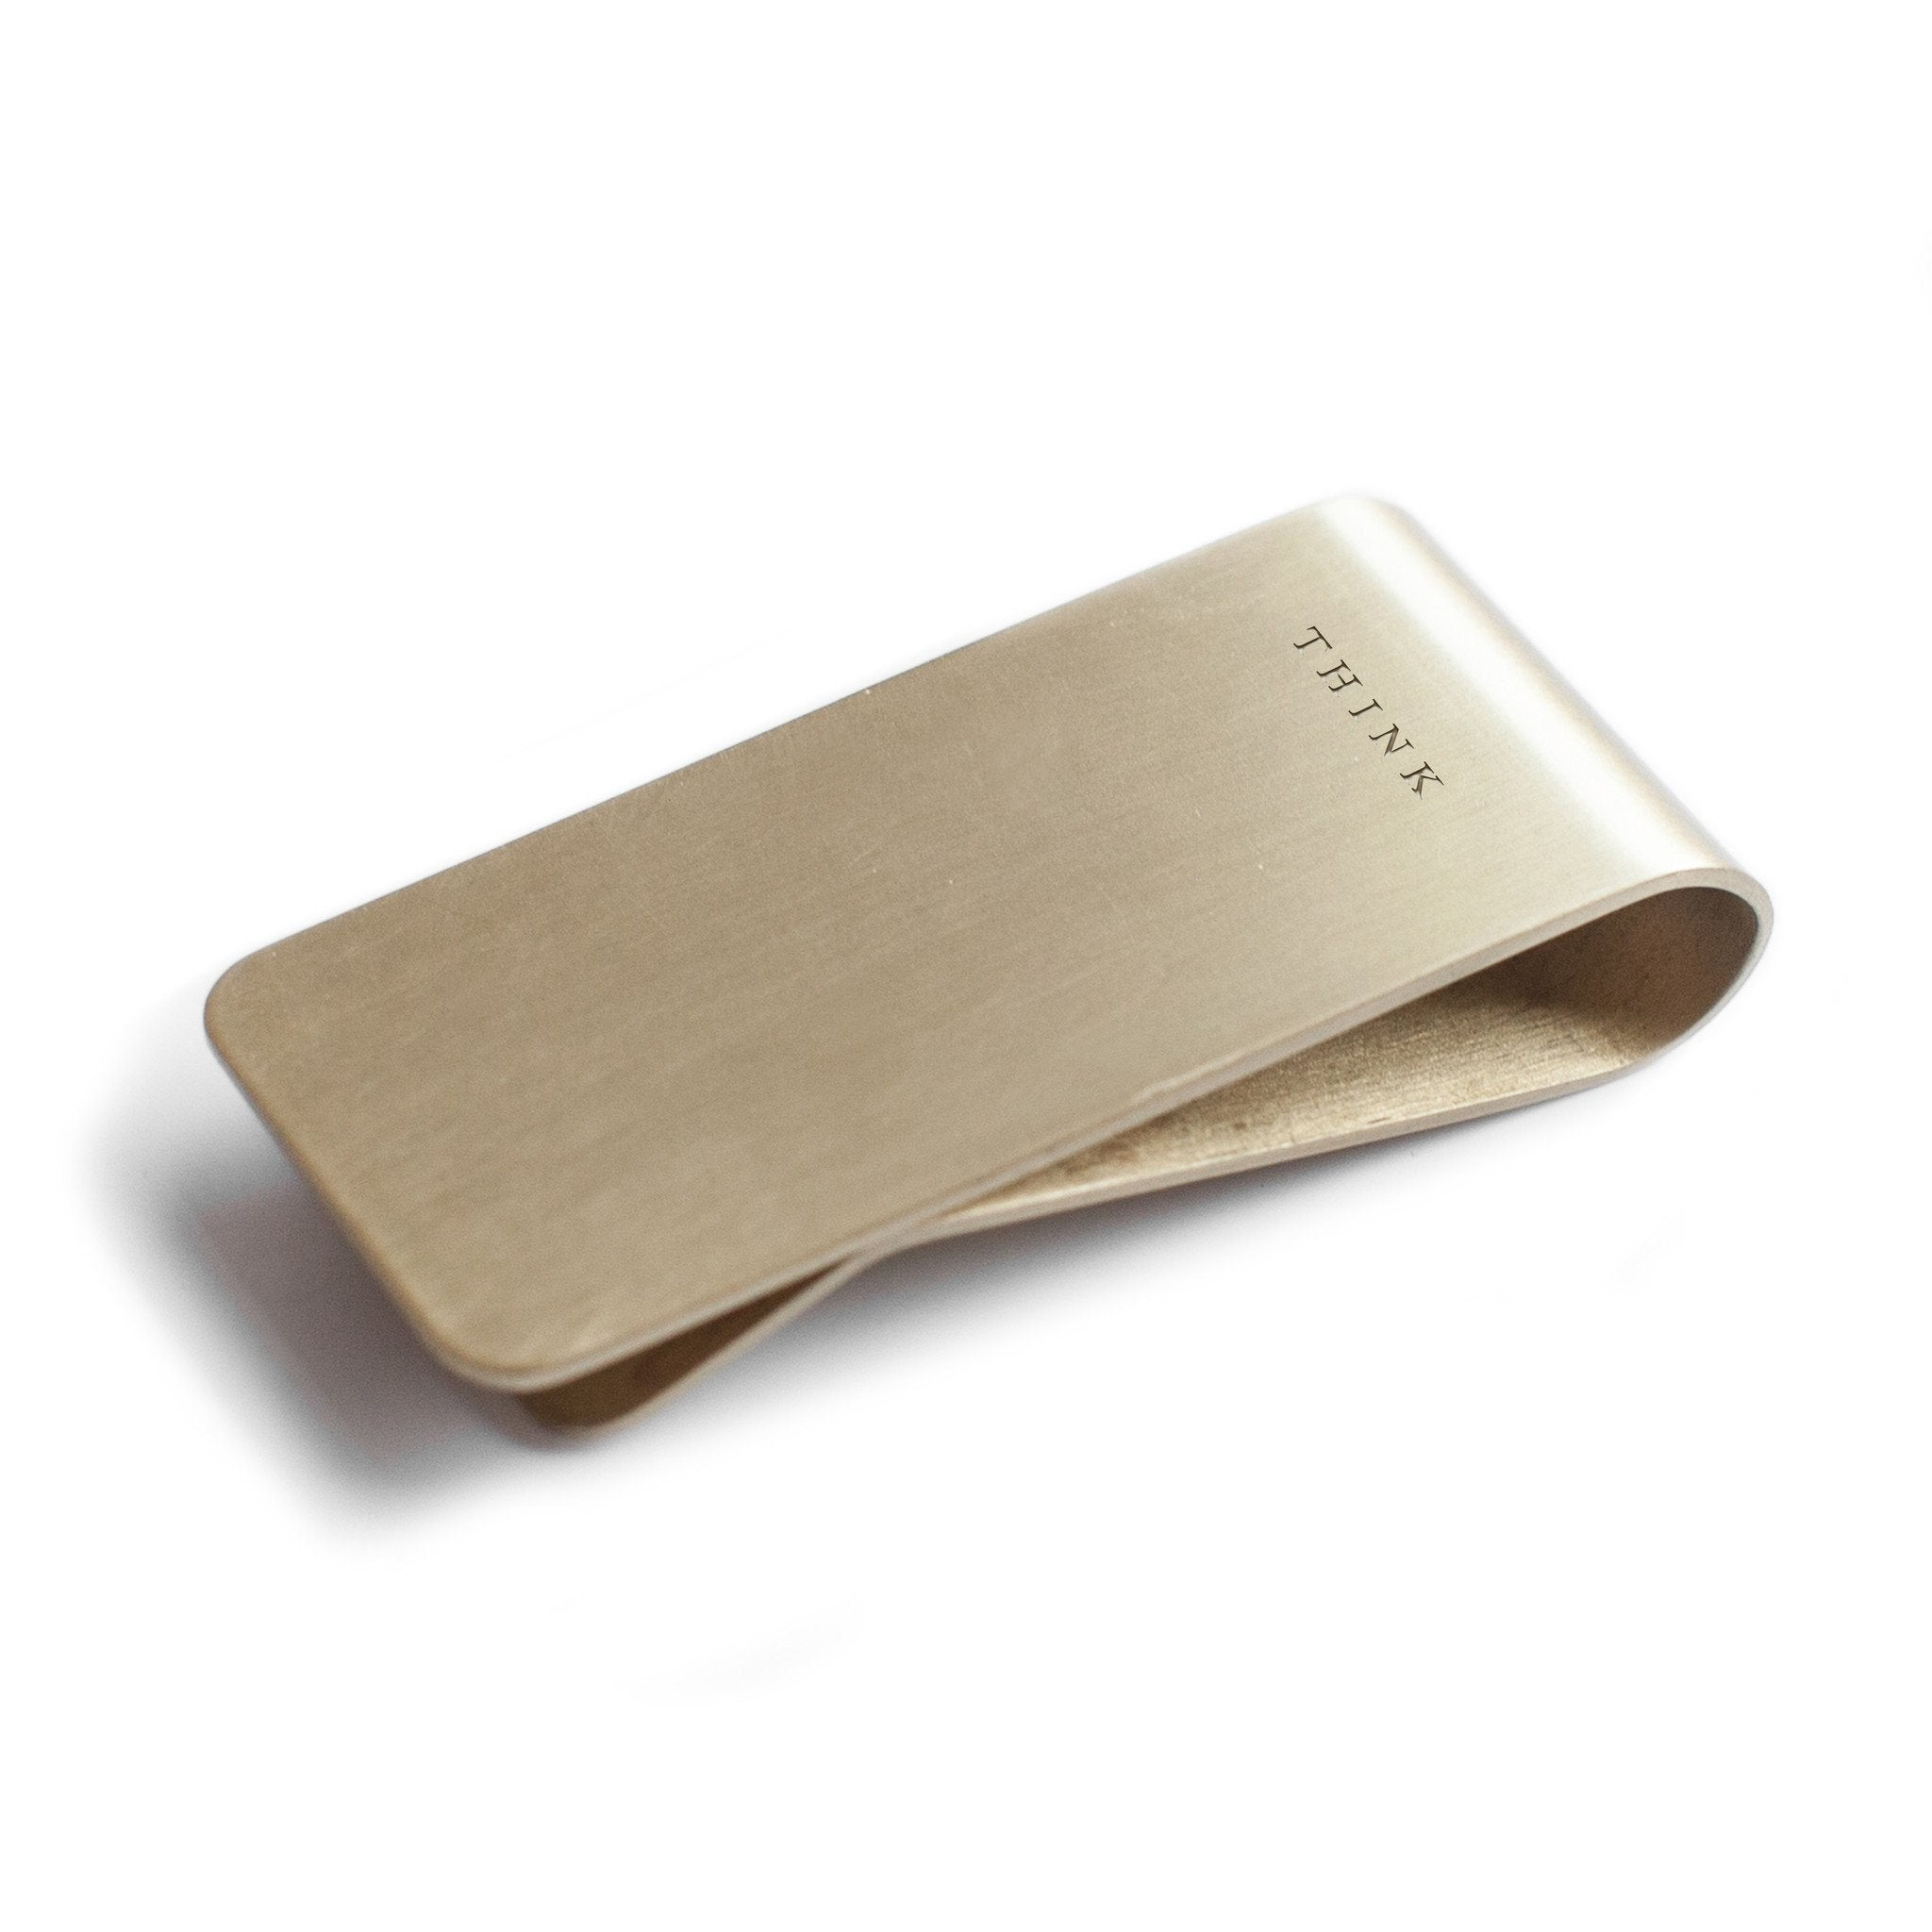 Brass money clip with think engraved on the front